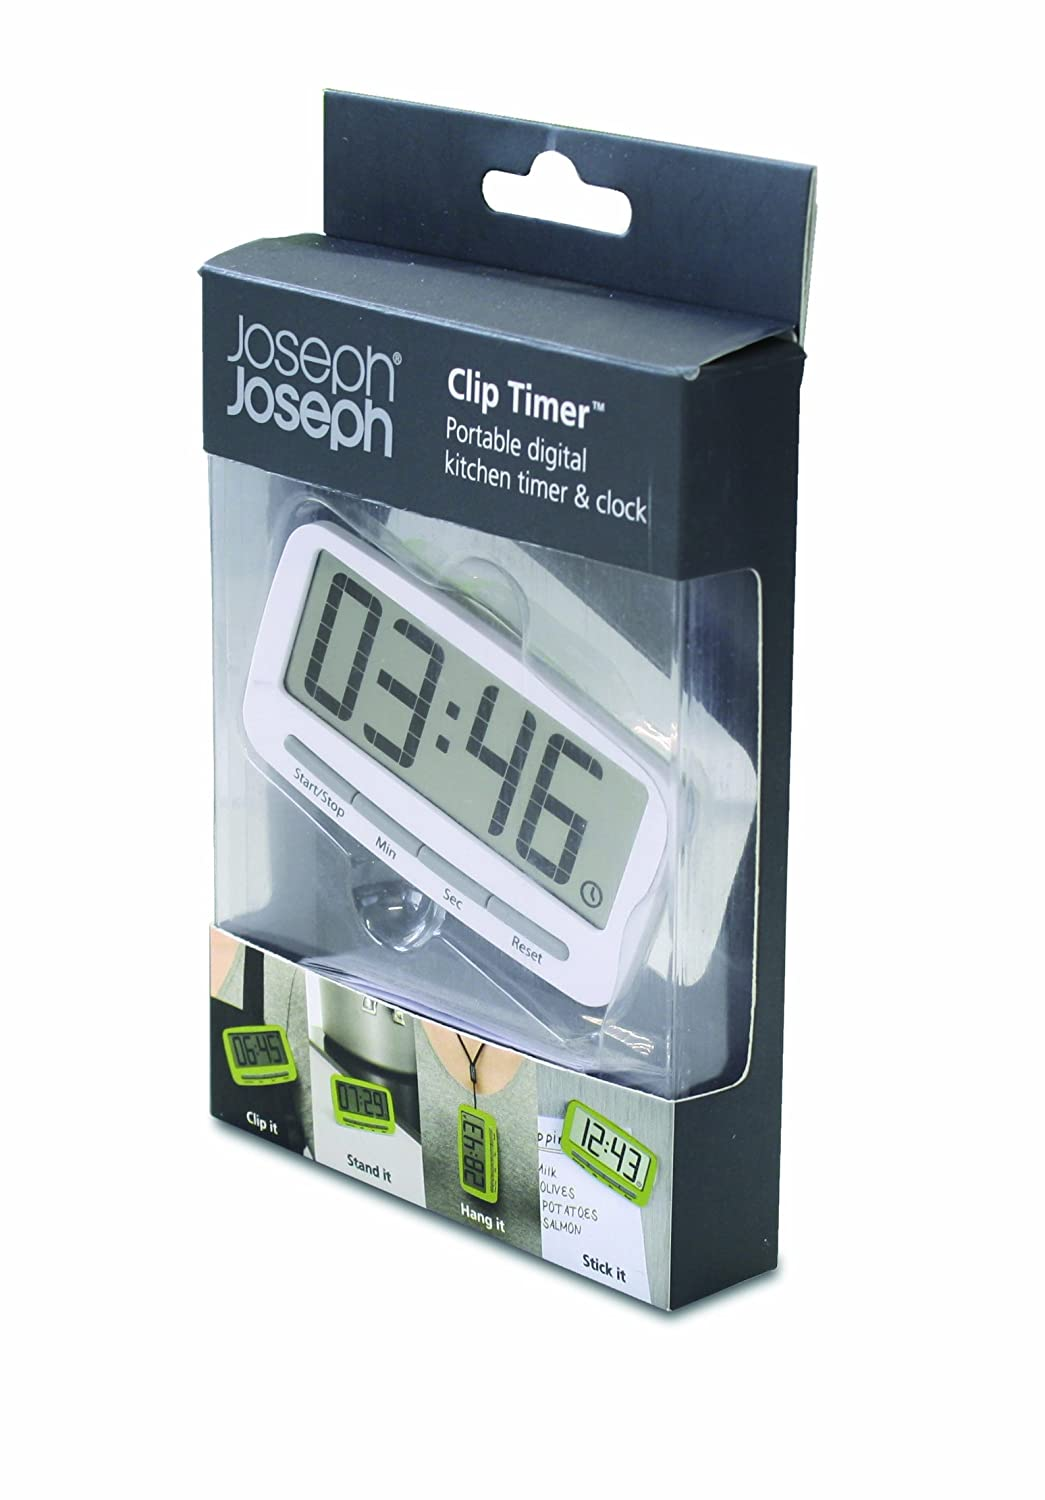 Amazon.com: Joseph Joseph Clip Timer Portable Digital Kitchen Timer And  Clock, White: Kitchen U0026 Dining